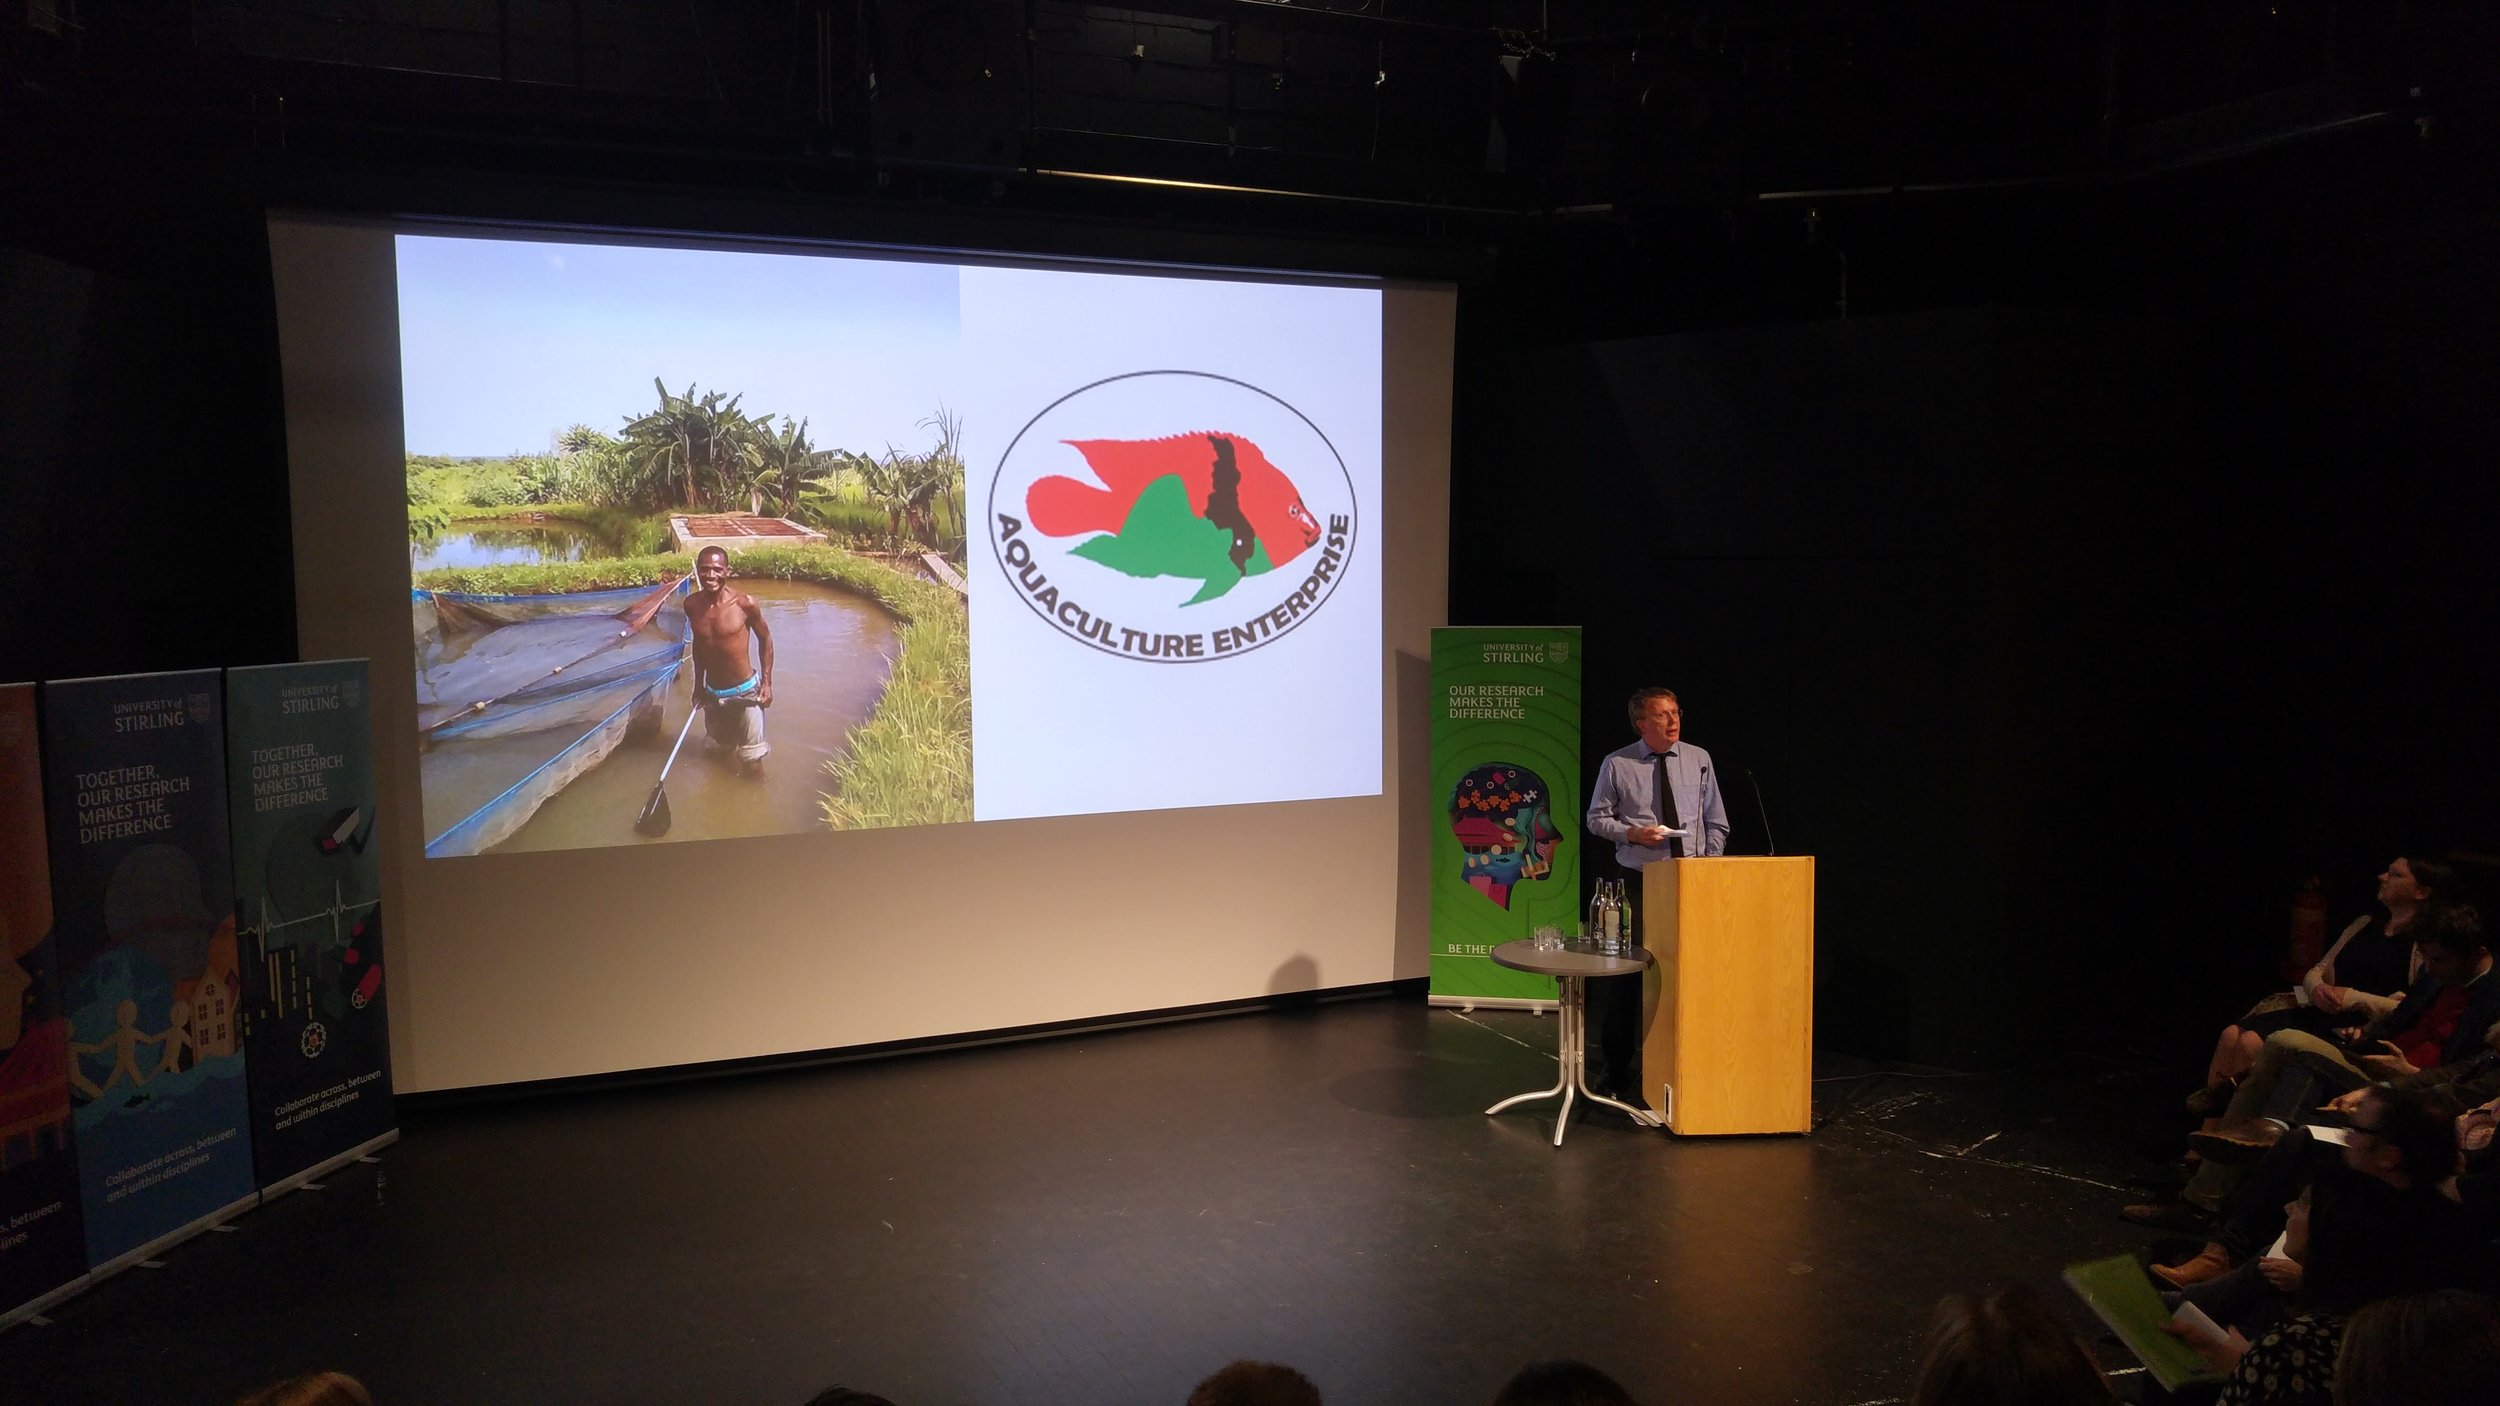 William Leschen presented work in Malawi supported by the Scottish Government